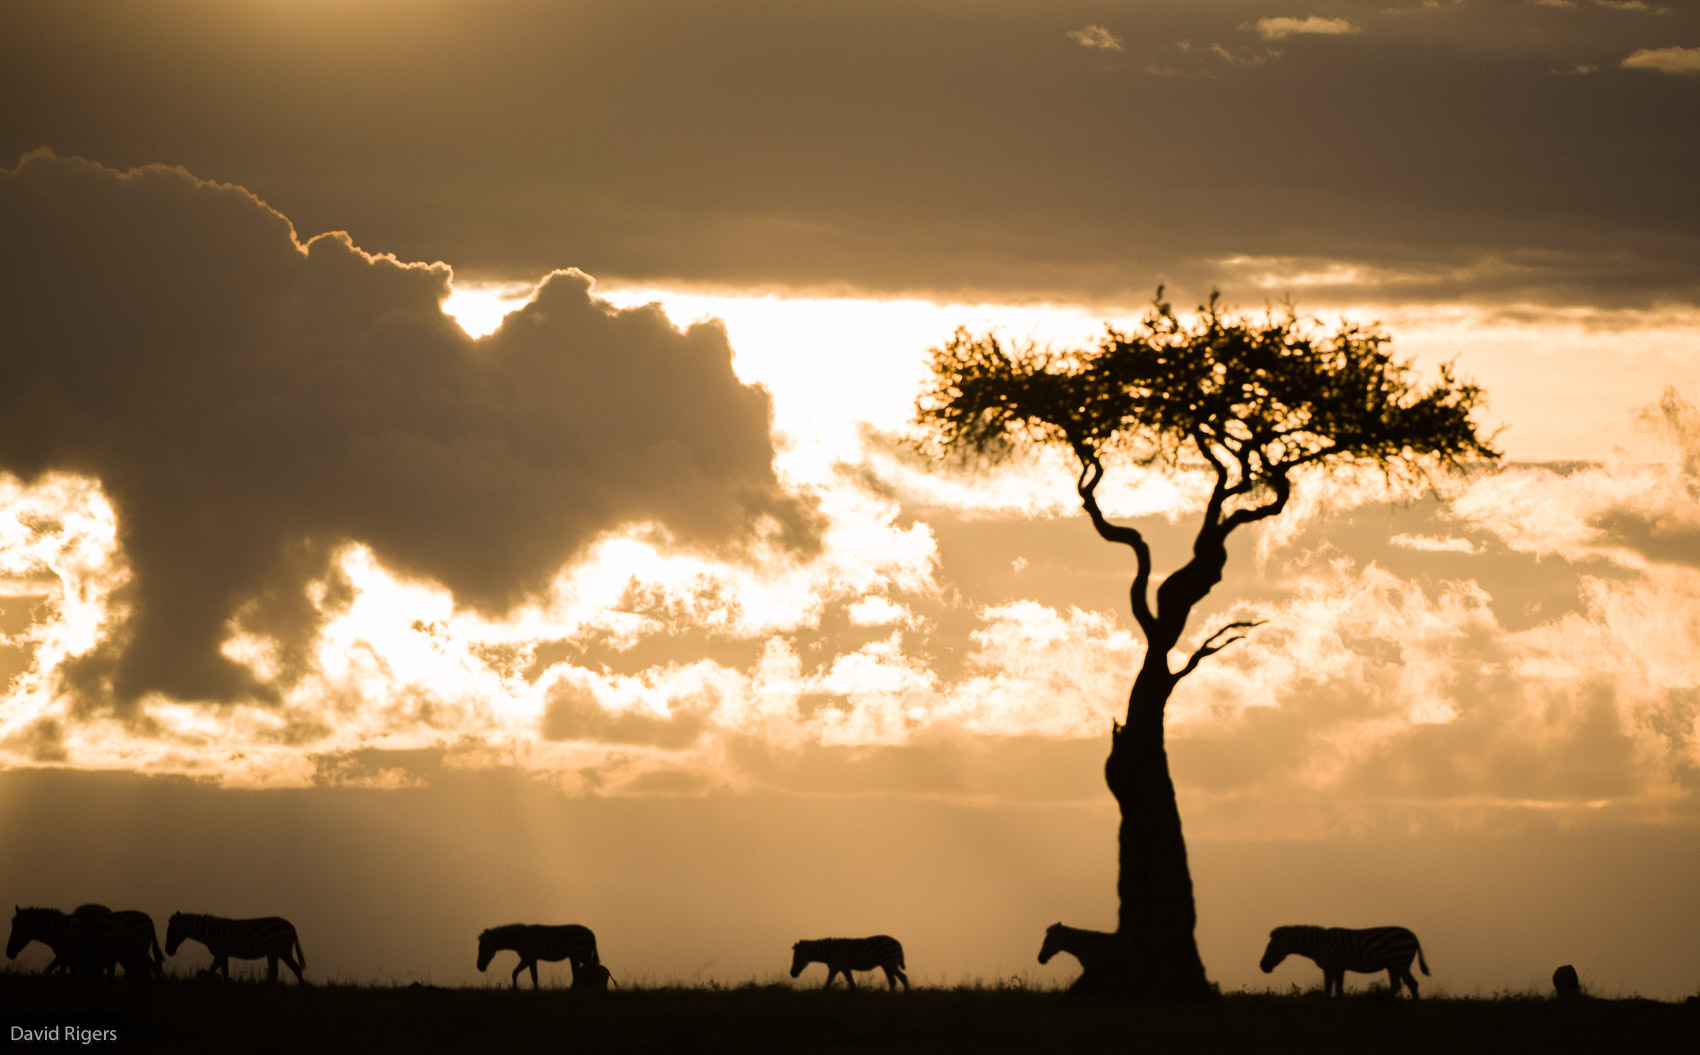 Kenya, Masai Mara National Park, Silhouettes of animals walking in the wild. ©David Rogers